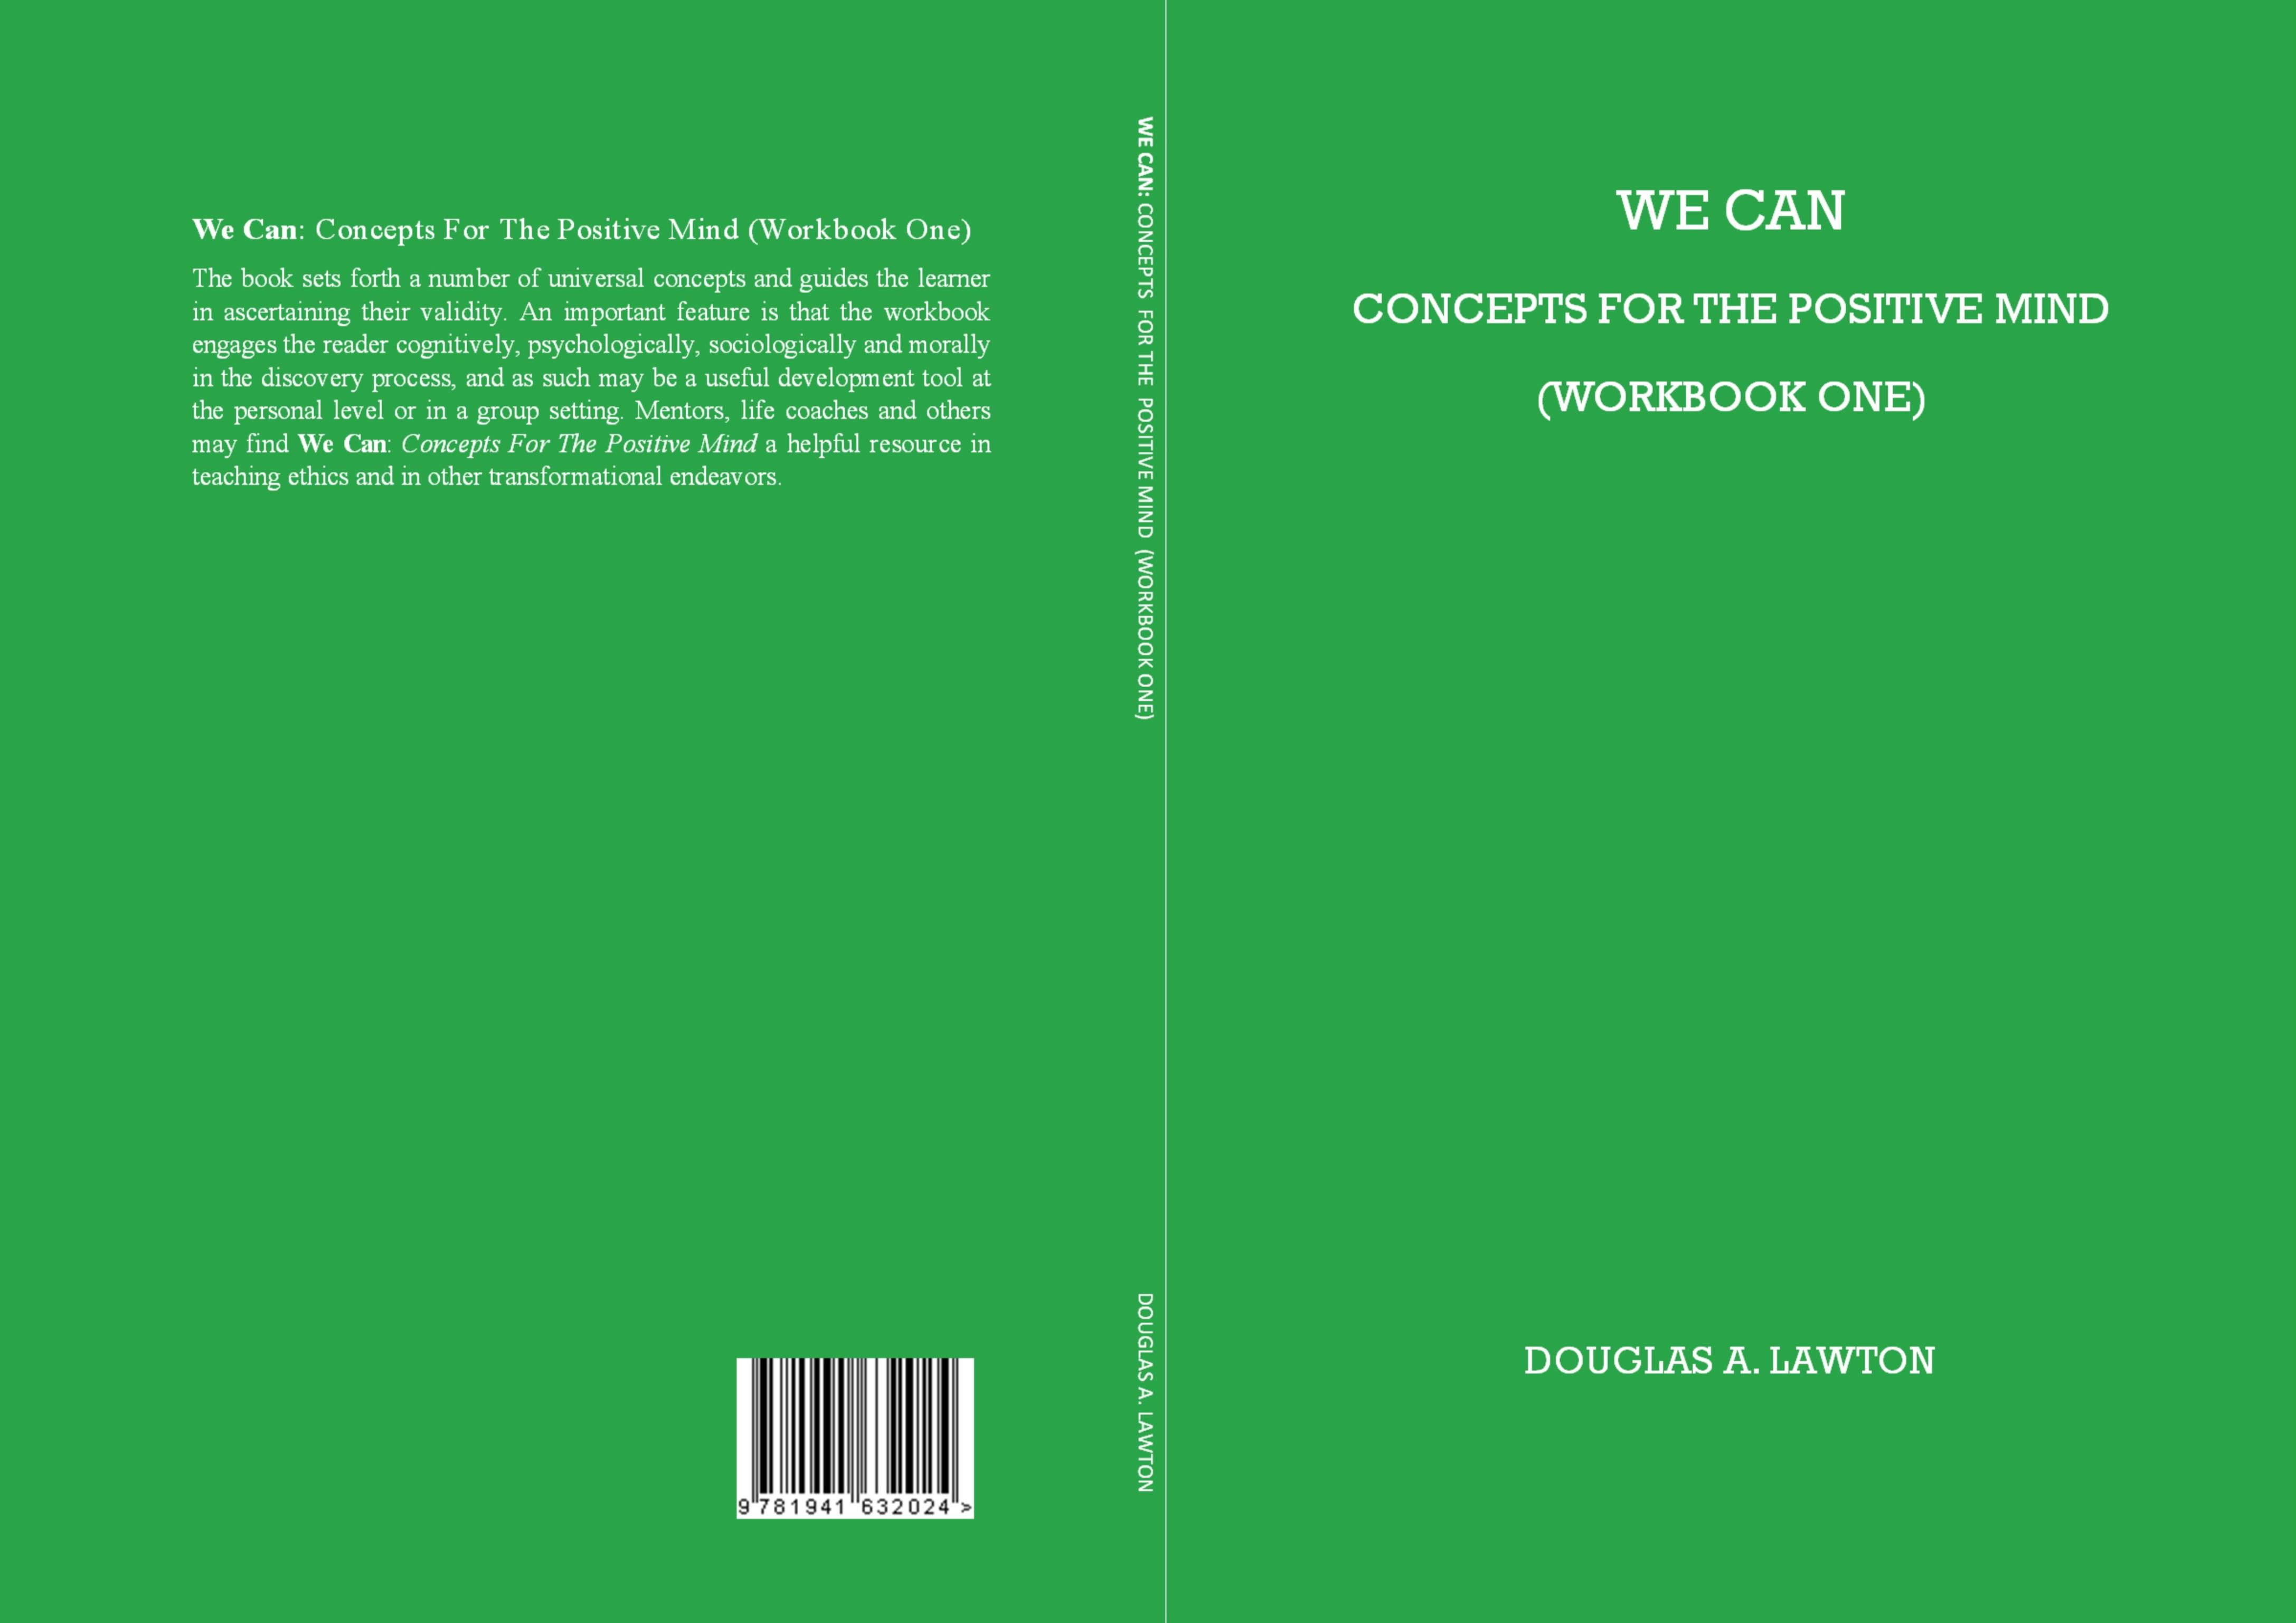 We Can: Concepts for the Positive Mind (Workbook One) cover image